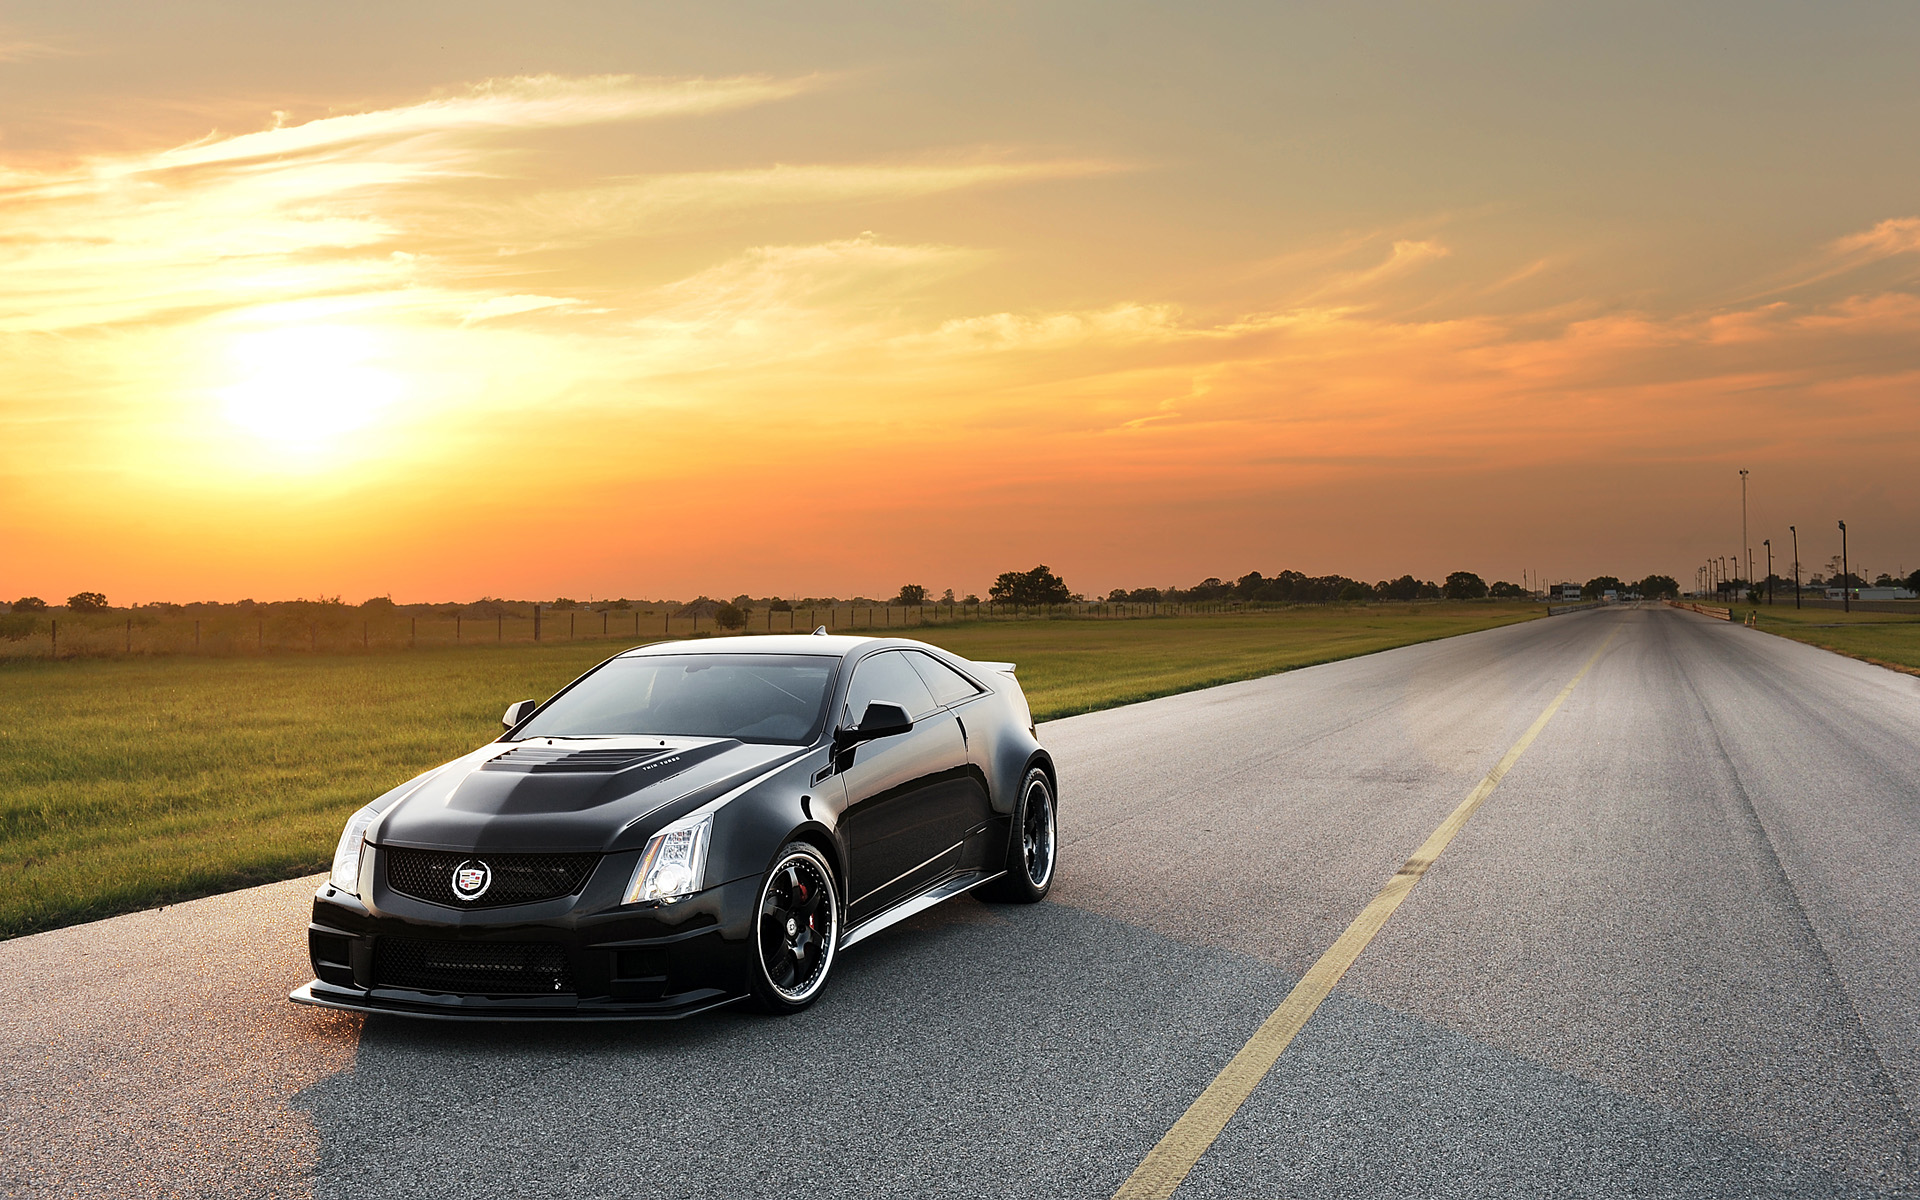 Hennessey Cadillac VR1200 - 1920x1200